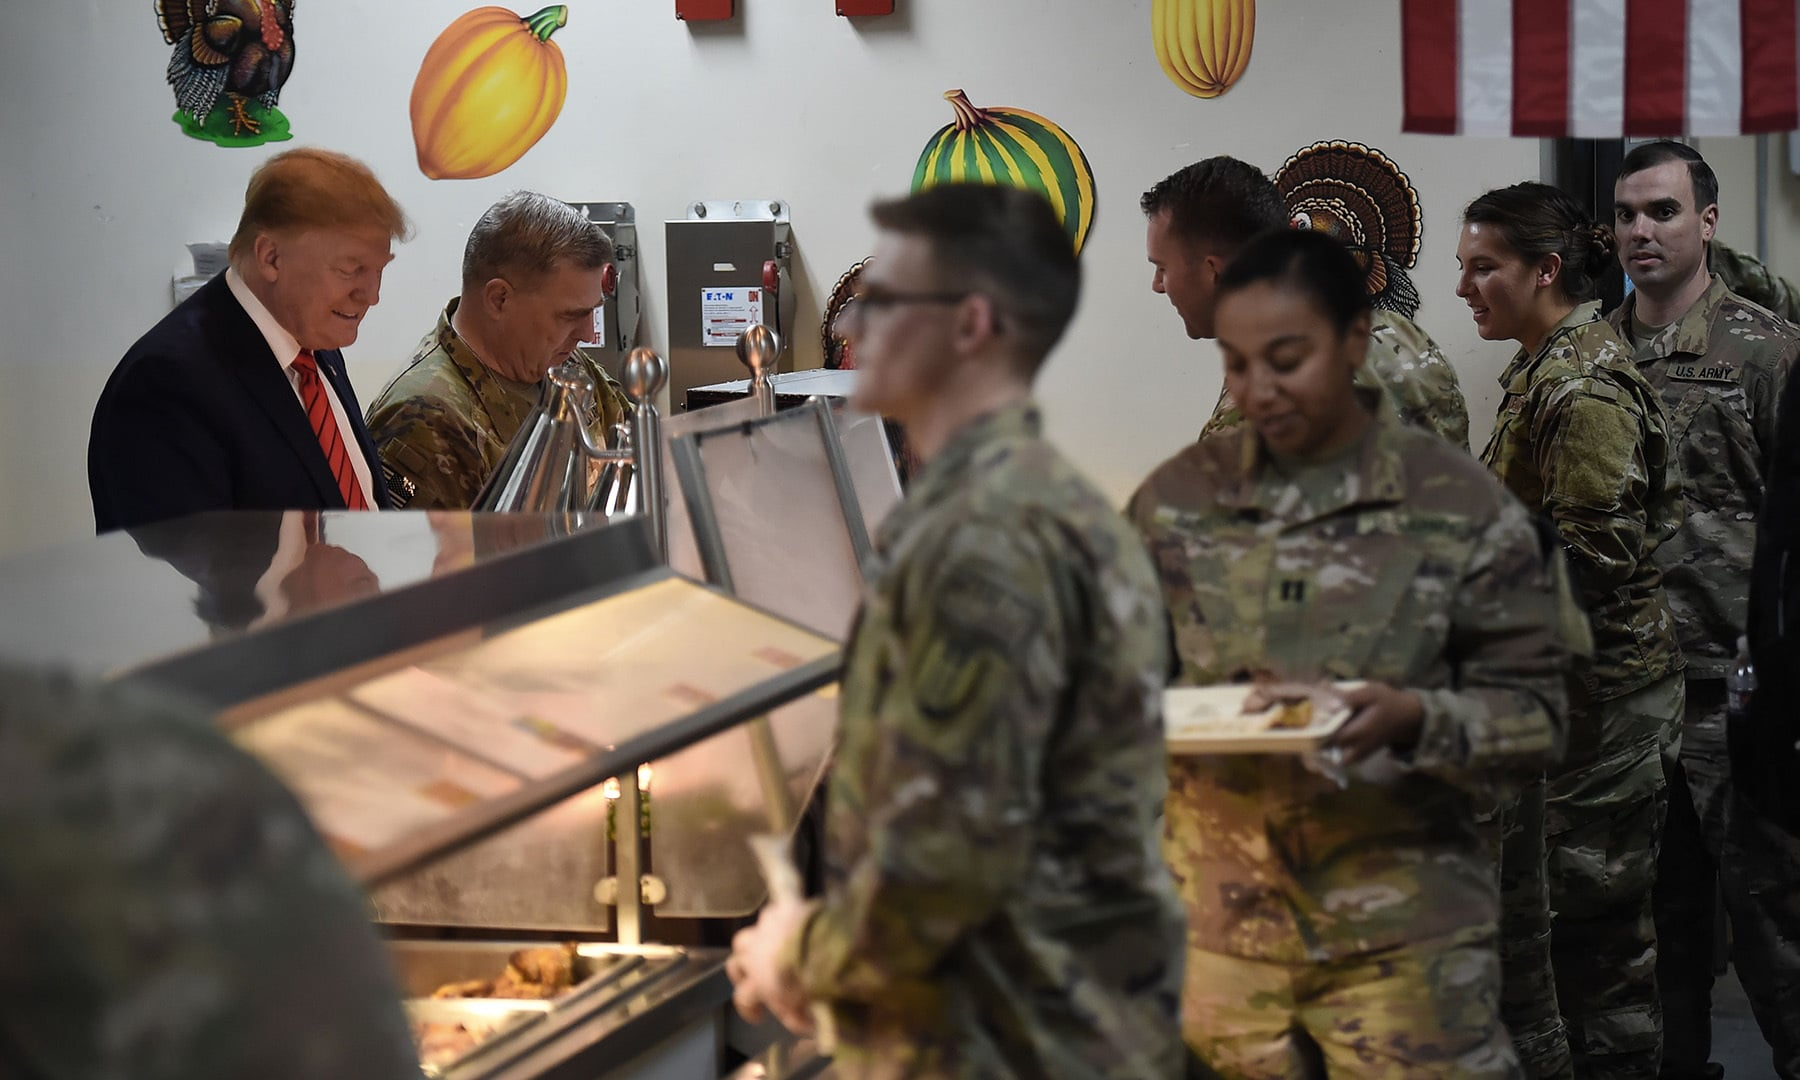 US President Donald Trump serves Thanksgiving dinner to US troops at Bagram Air Field during a surprise visit on November 28 in Afghanistan. — AFP